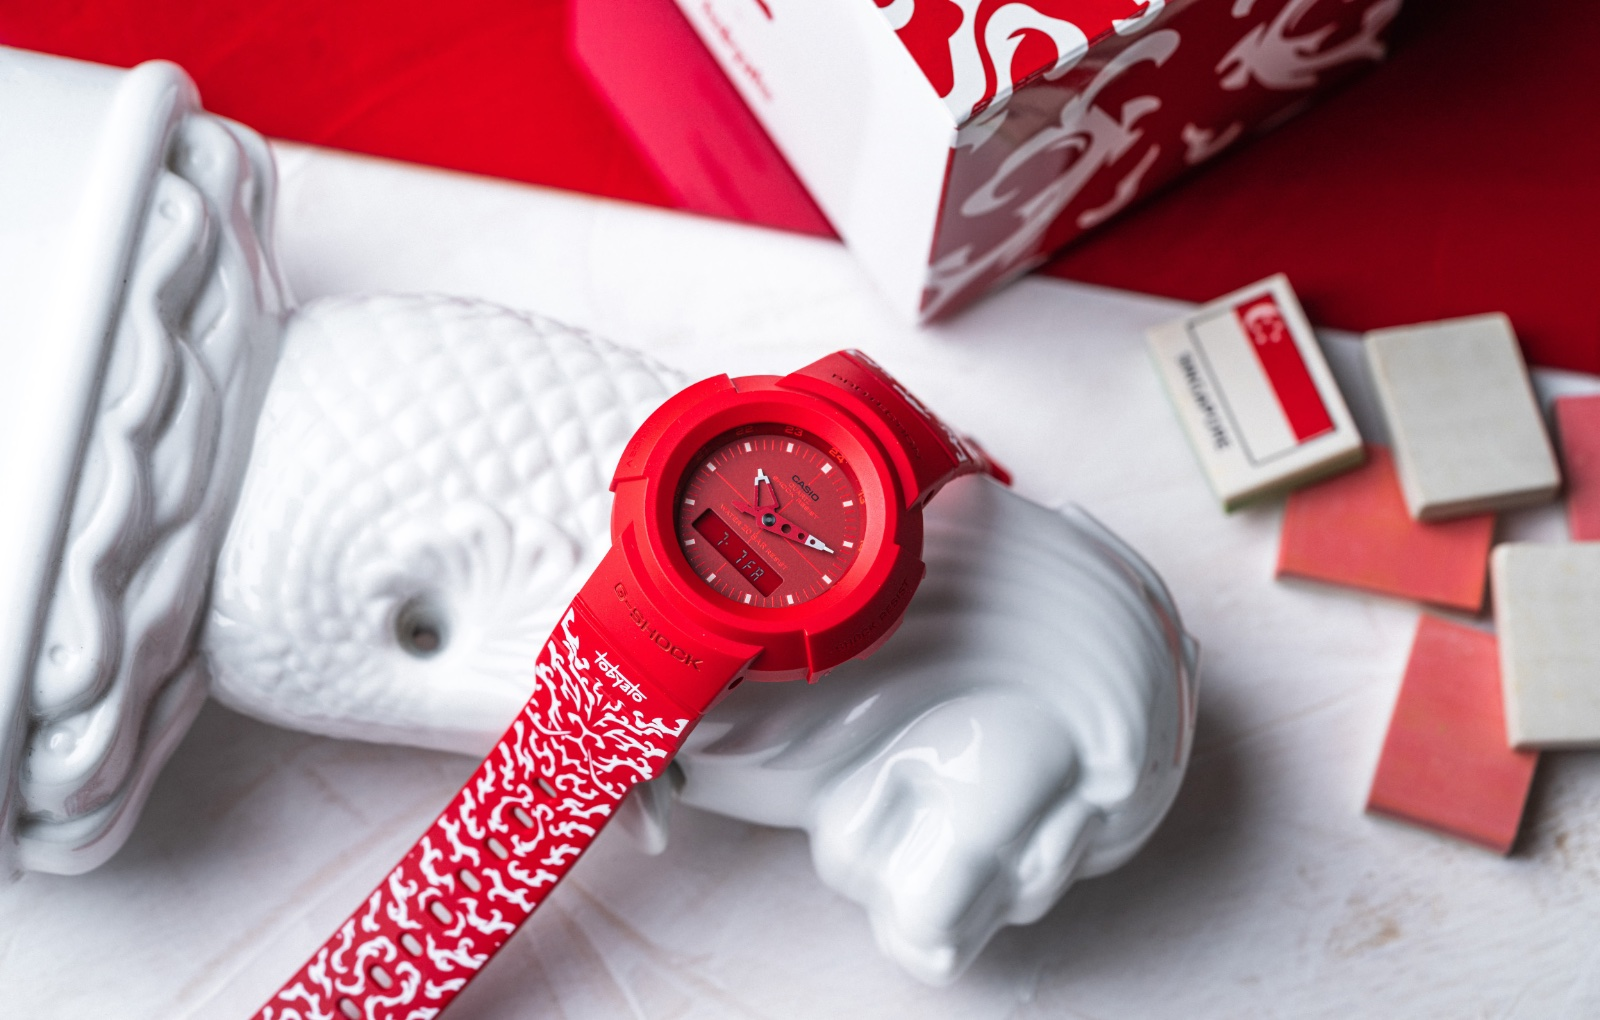 The lion graphic and flowing motifs are meant to embody the raw energy and tenacity that courses through Singapore. Image courtesy of Casio.